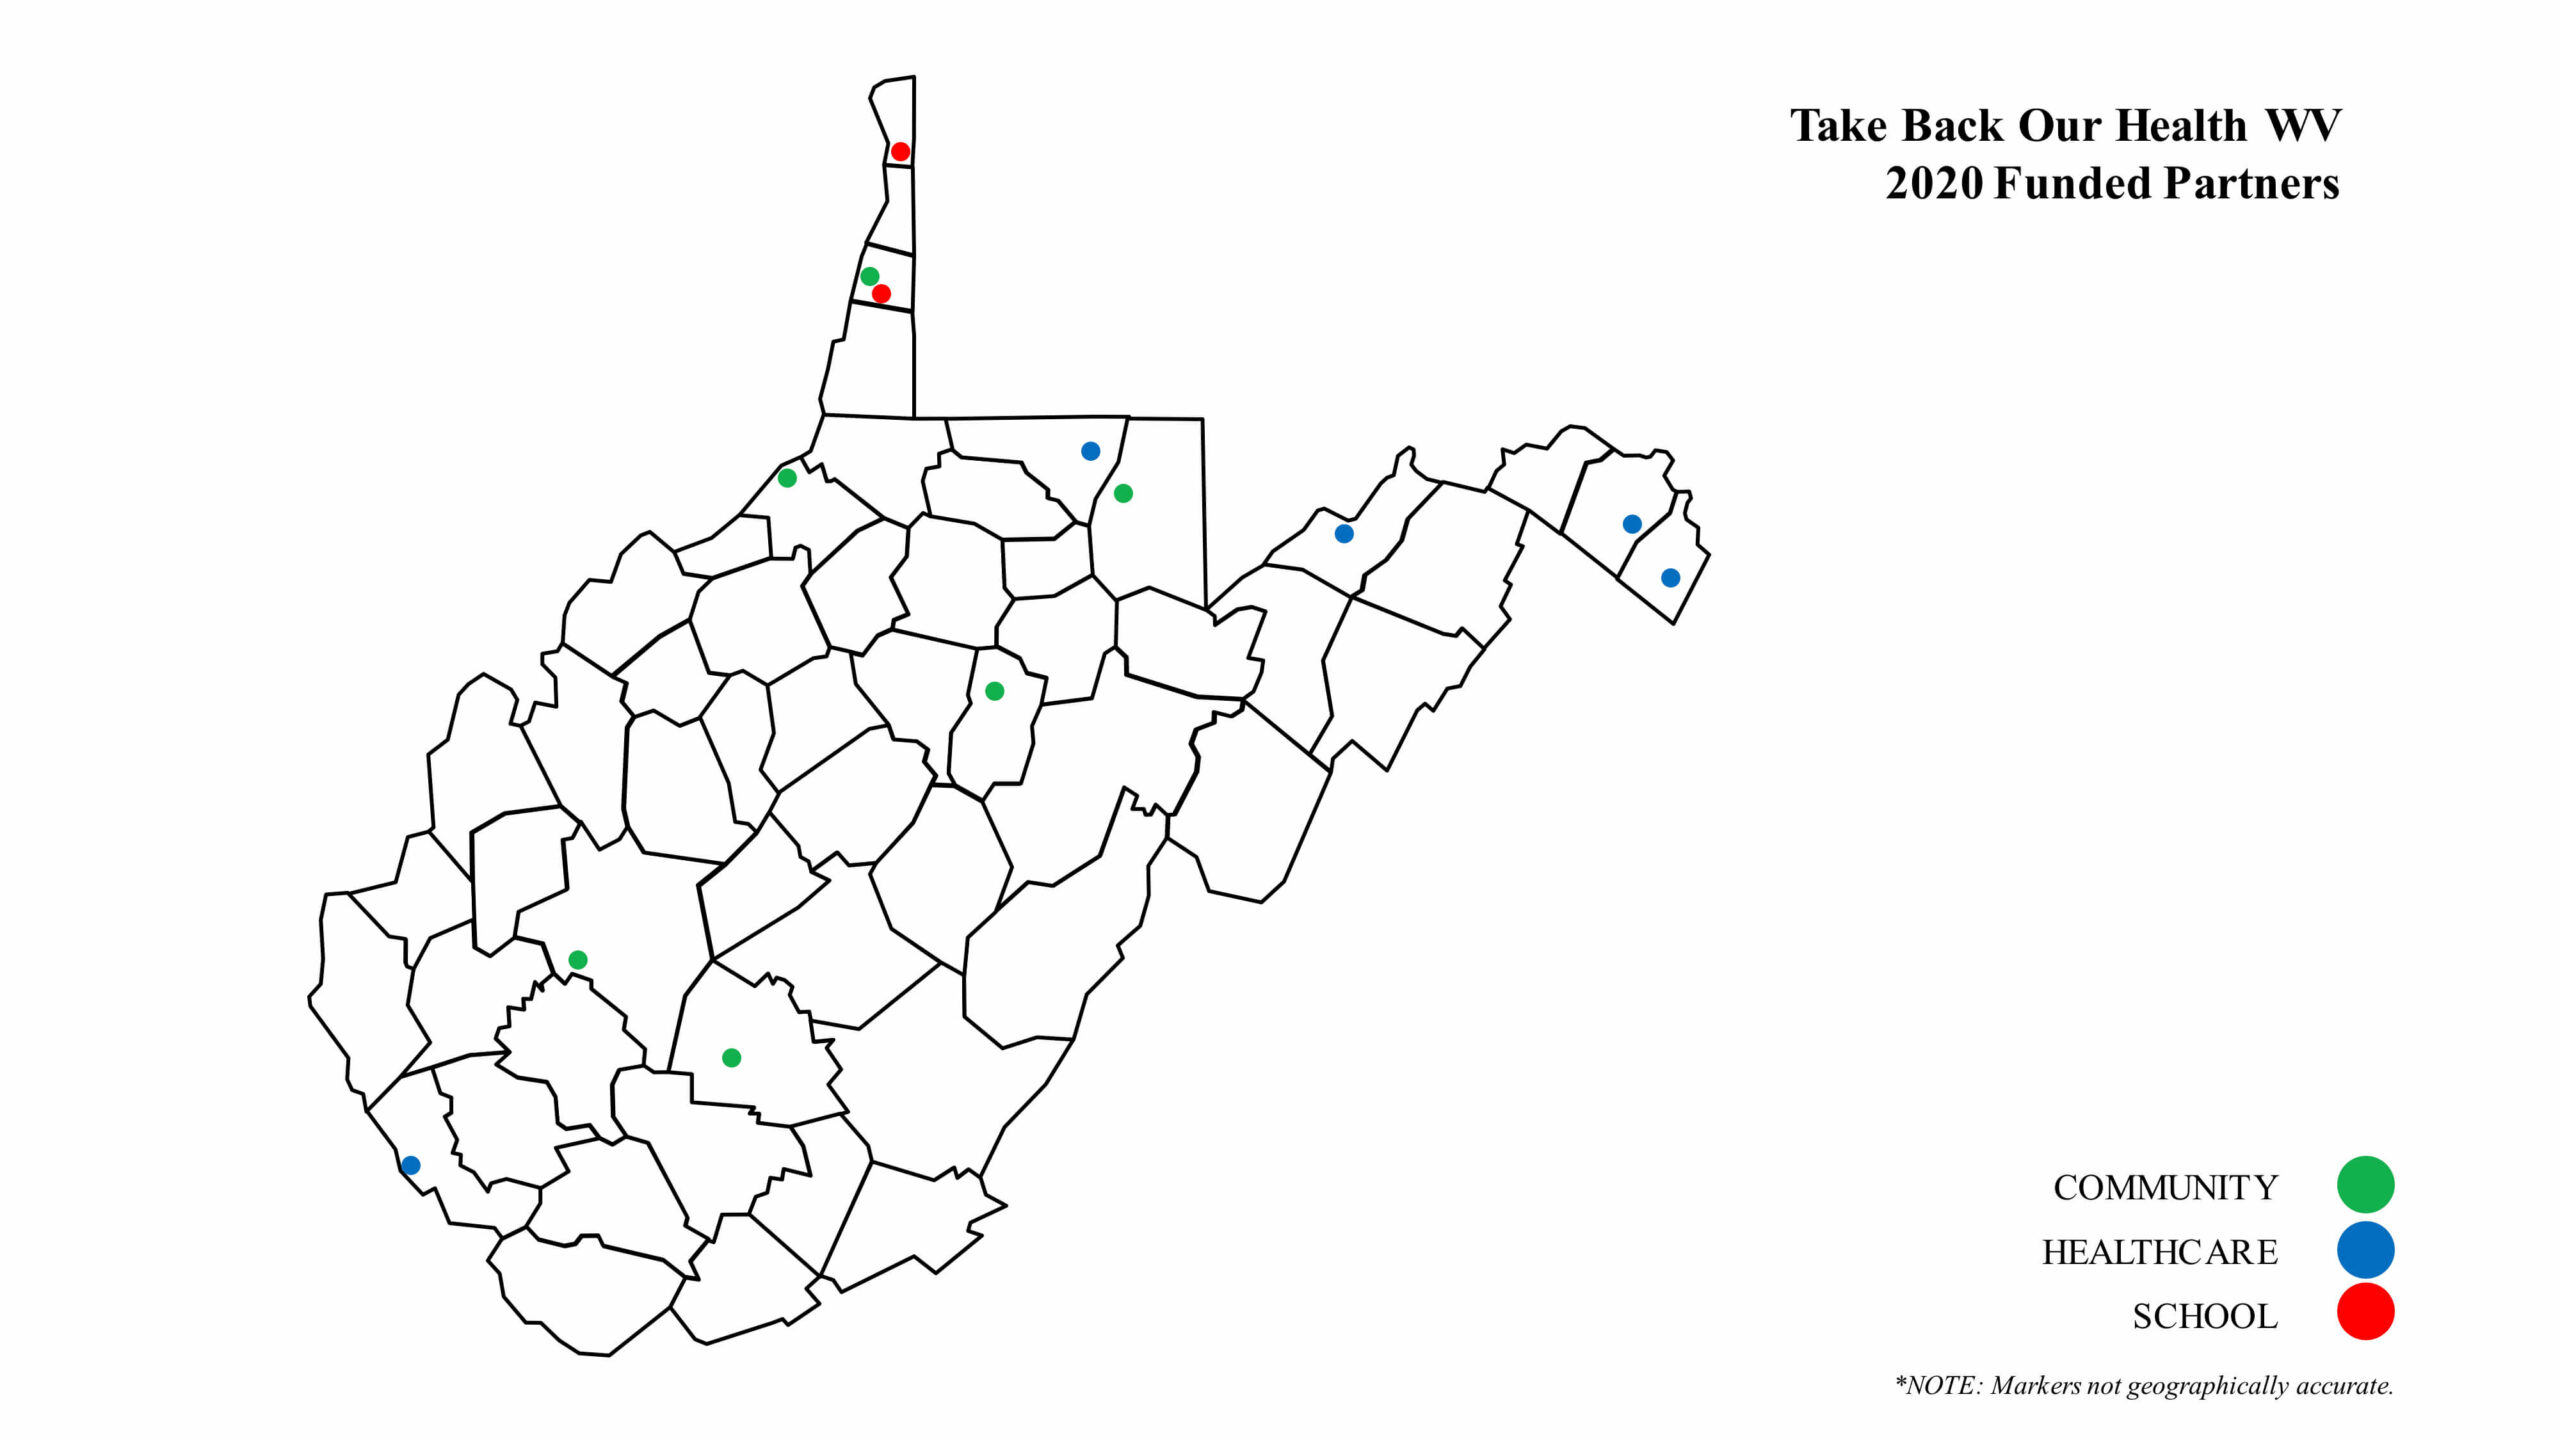 This is a Take Back Our Health WV chart with the locations of 2020 Funded Partners marked in green for Community, blue for Healthcare, and red for School. The markers are place in 12 West Virginia counties mostly in the northern part of the state.